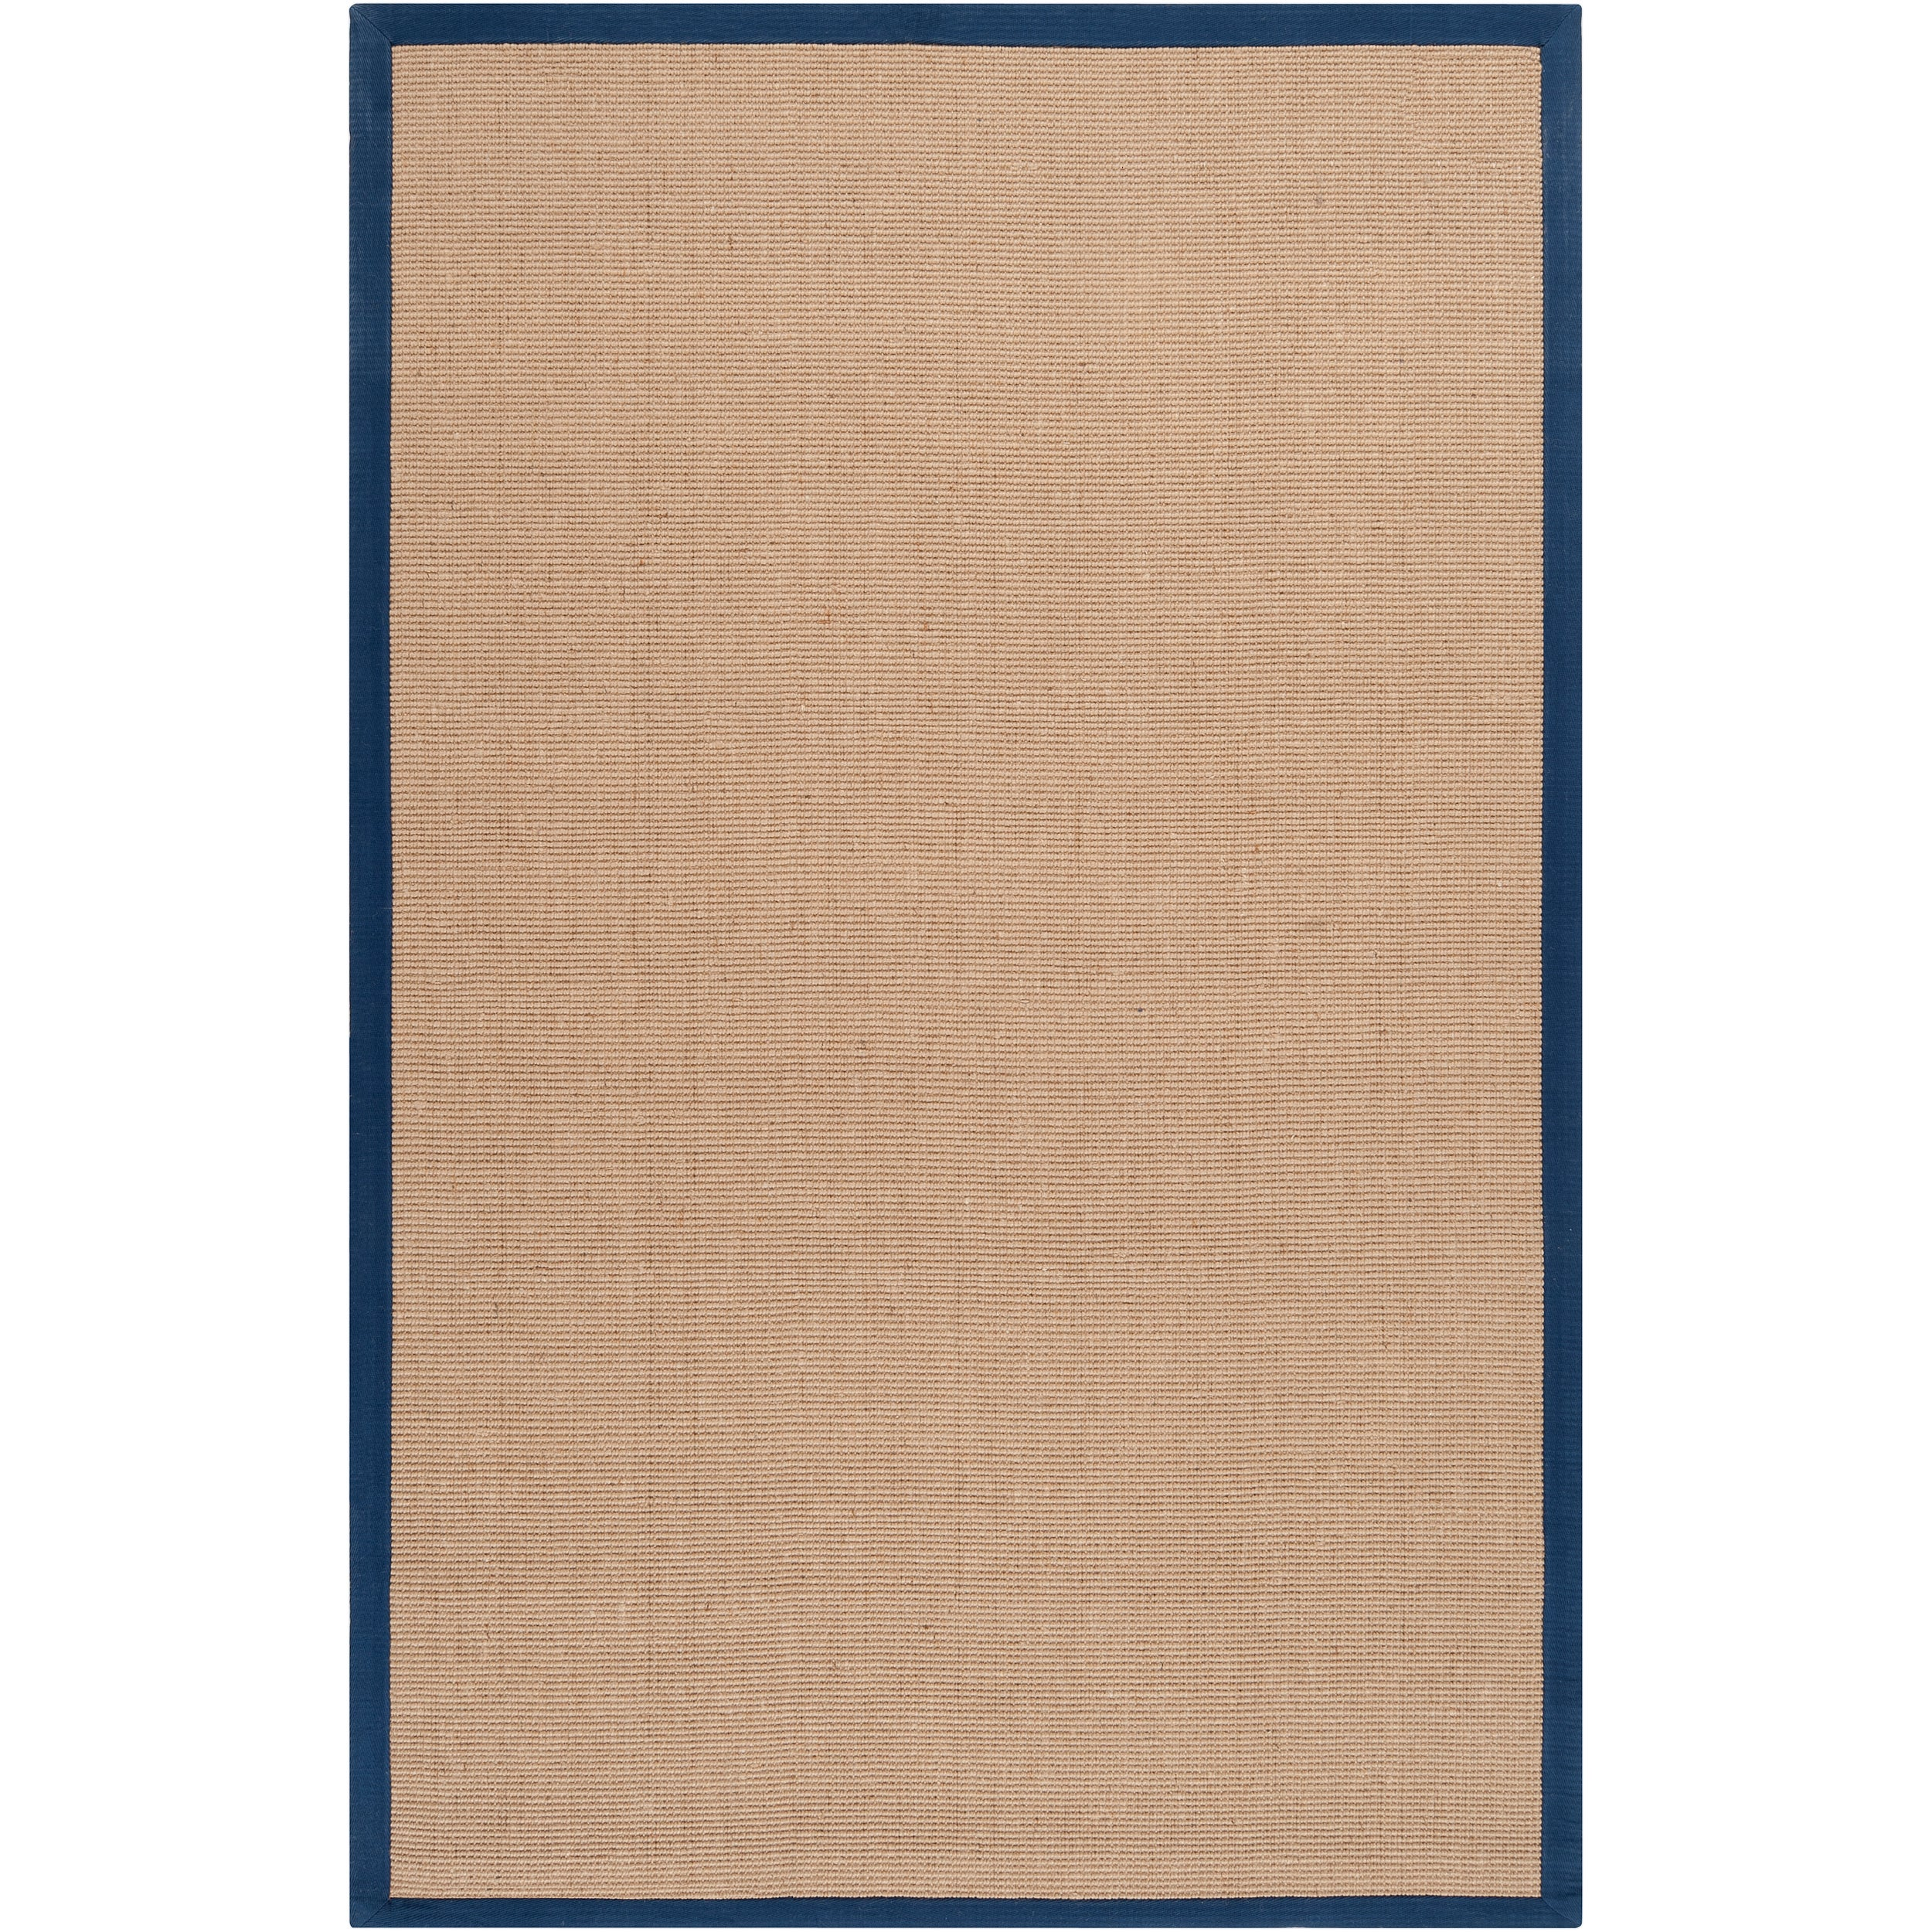 Hand Woven Navy Sophie B Natural Fiber Jute Area Rug 8